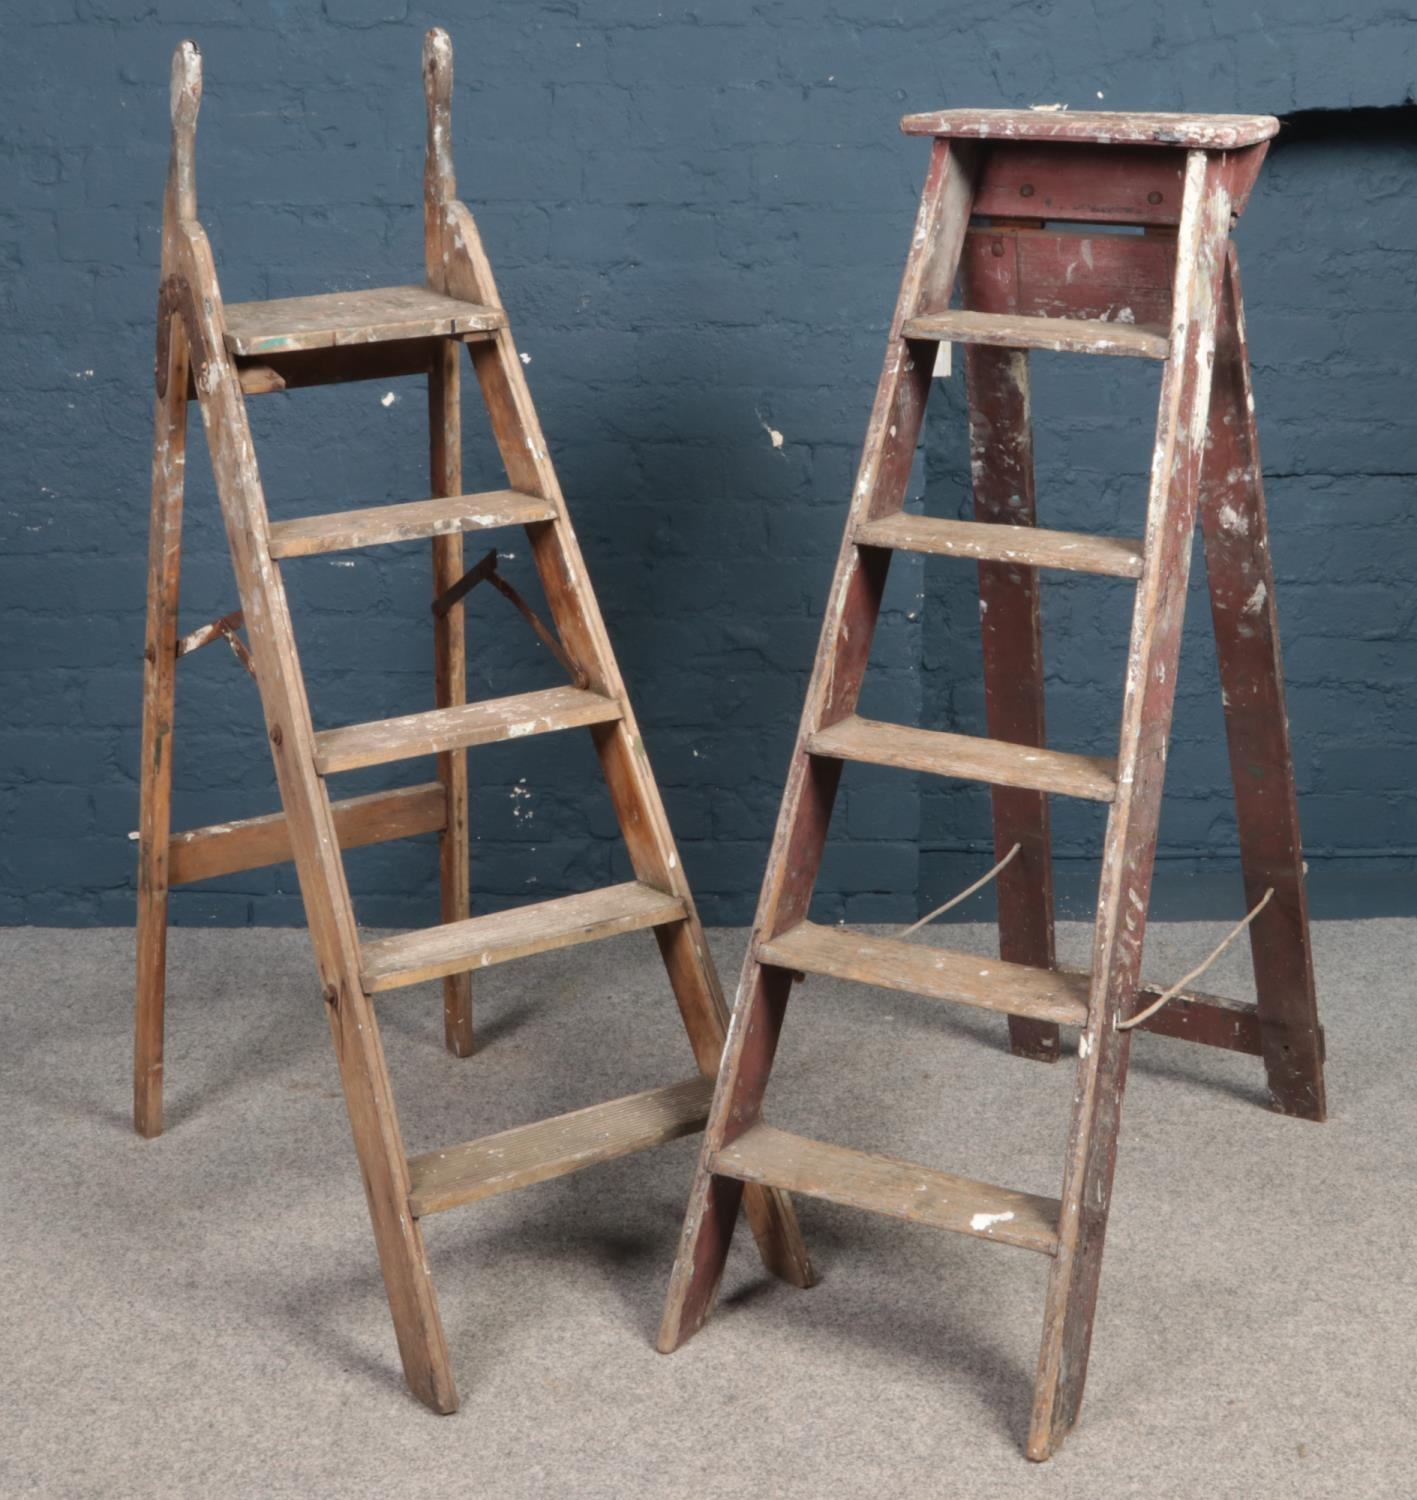 Two sets of decorators wooden step ladders.